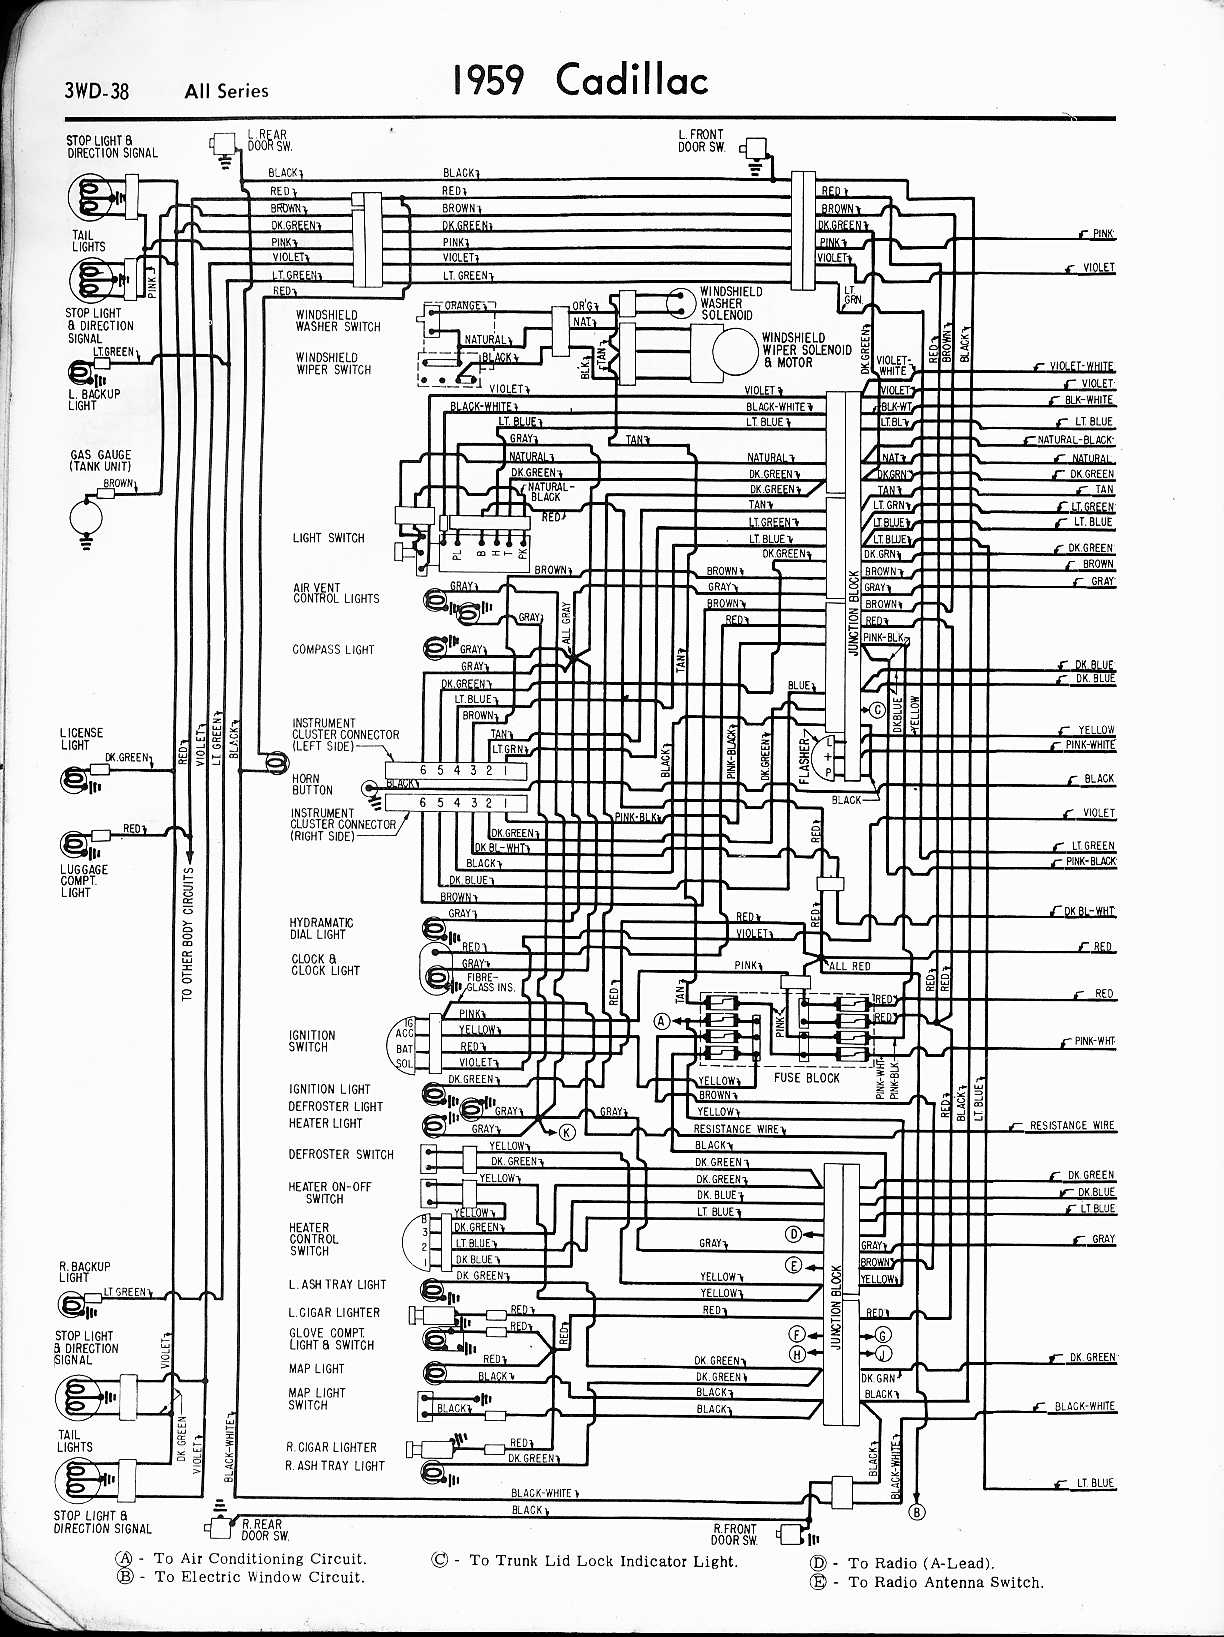 cadillac 1963 windows wiring diagram all about diagrams les paul wiring diagram all parts cadillac wiring diagrams: 1957-1965